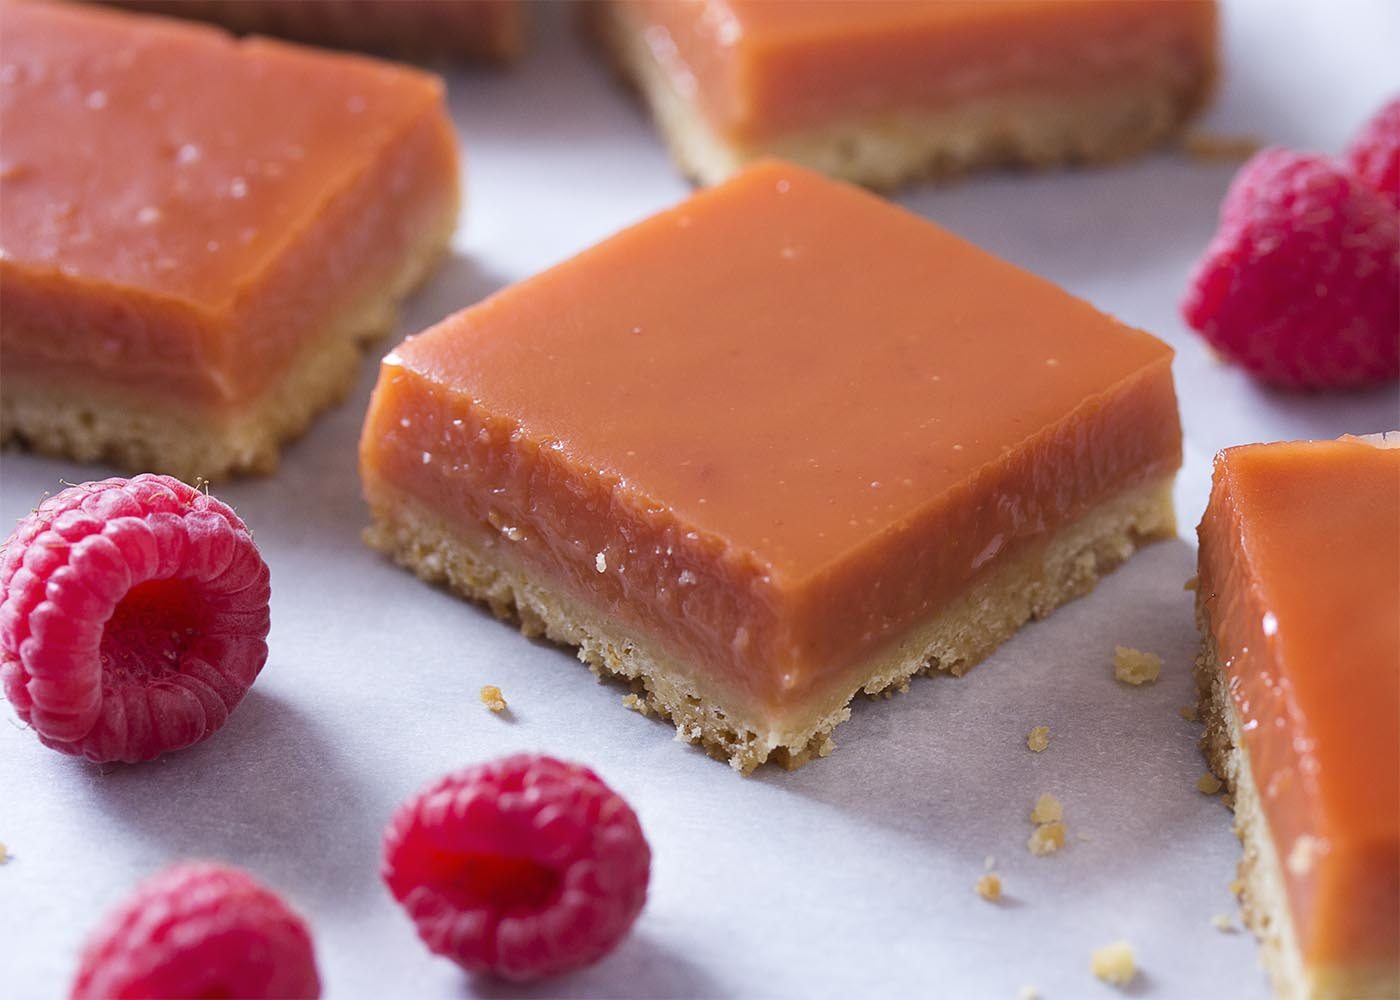 Finished lemon raspberry bars cut into squares showing the orange-red color of the filling.